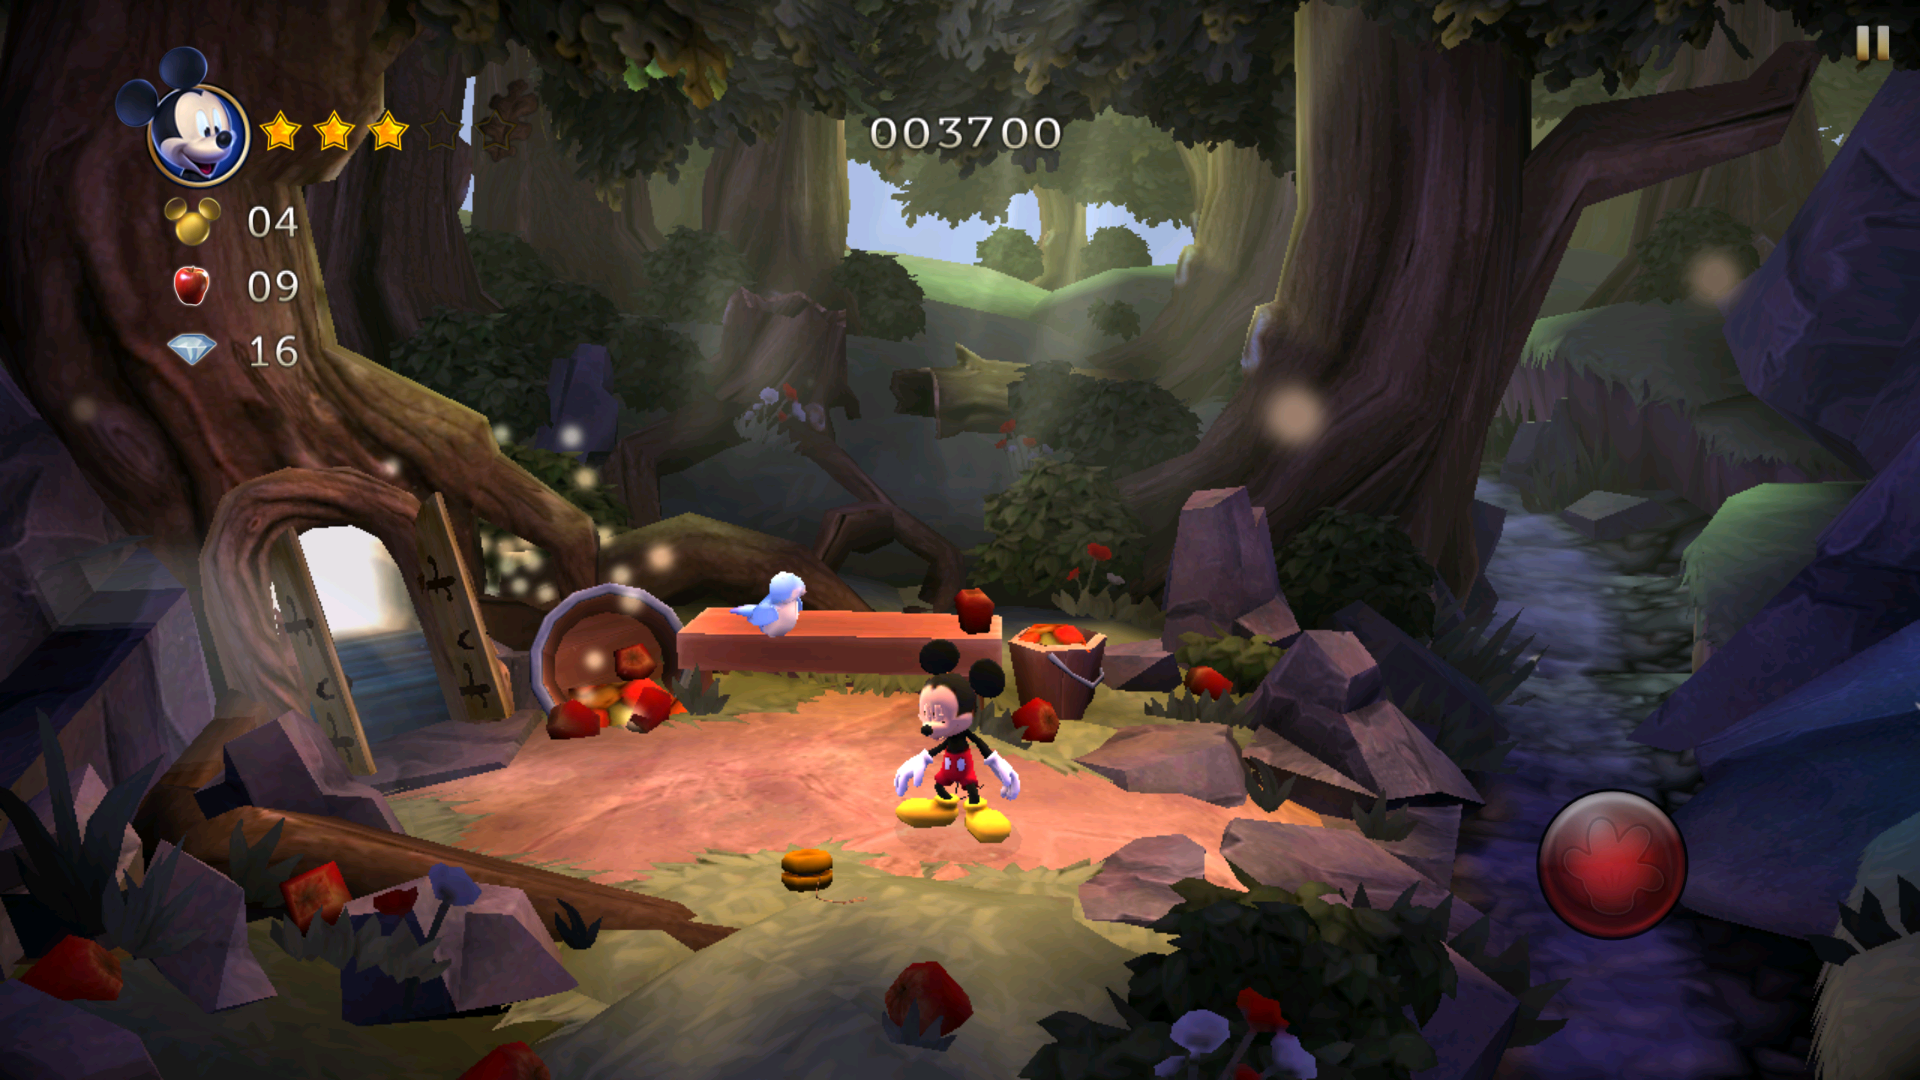 Download Castle of Illusion Starring Mickey Mouse. A Full Version Adventure  game for Windows. ... Free alternatives to Castle of Illusion. Assassin's Creed  Unity...